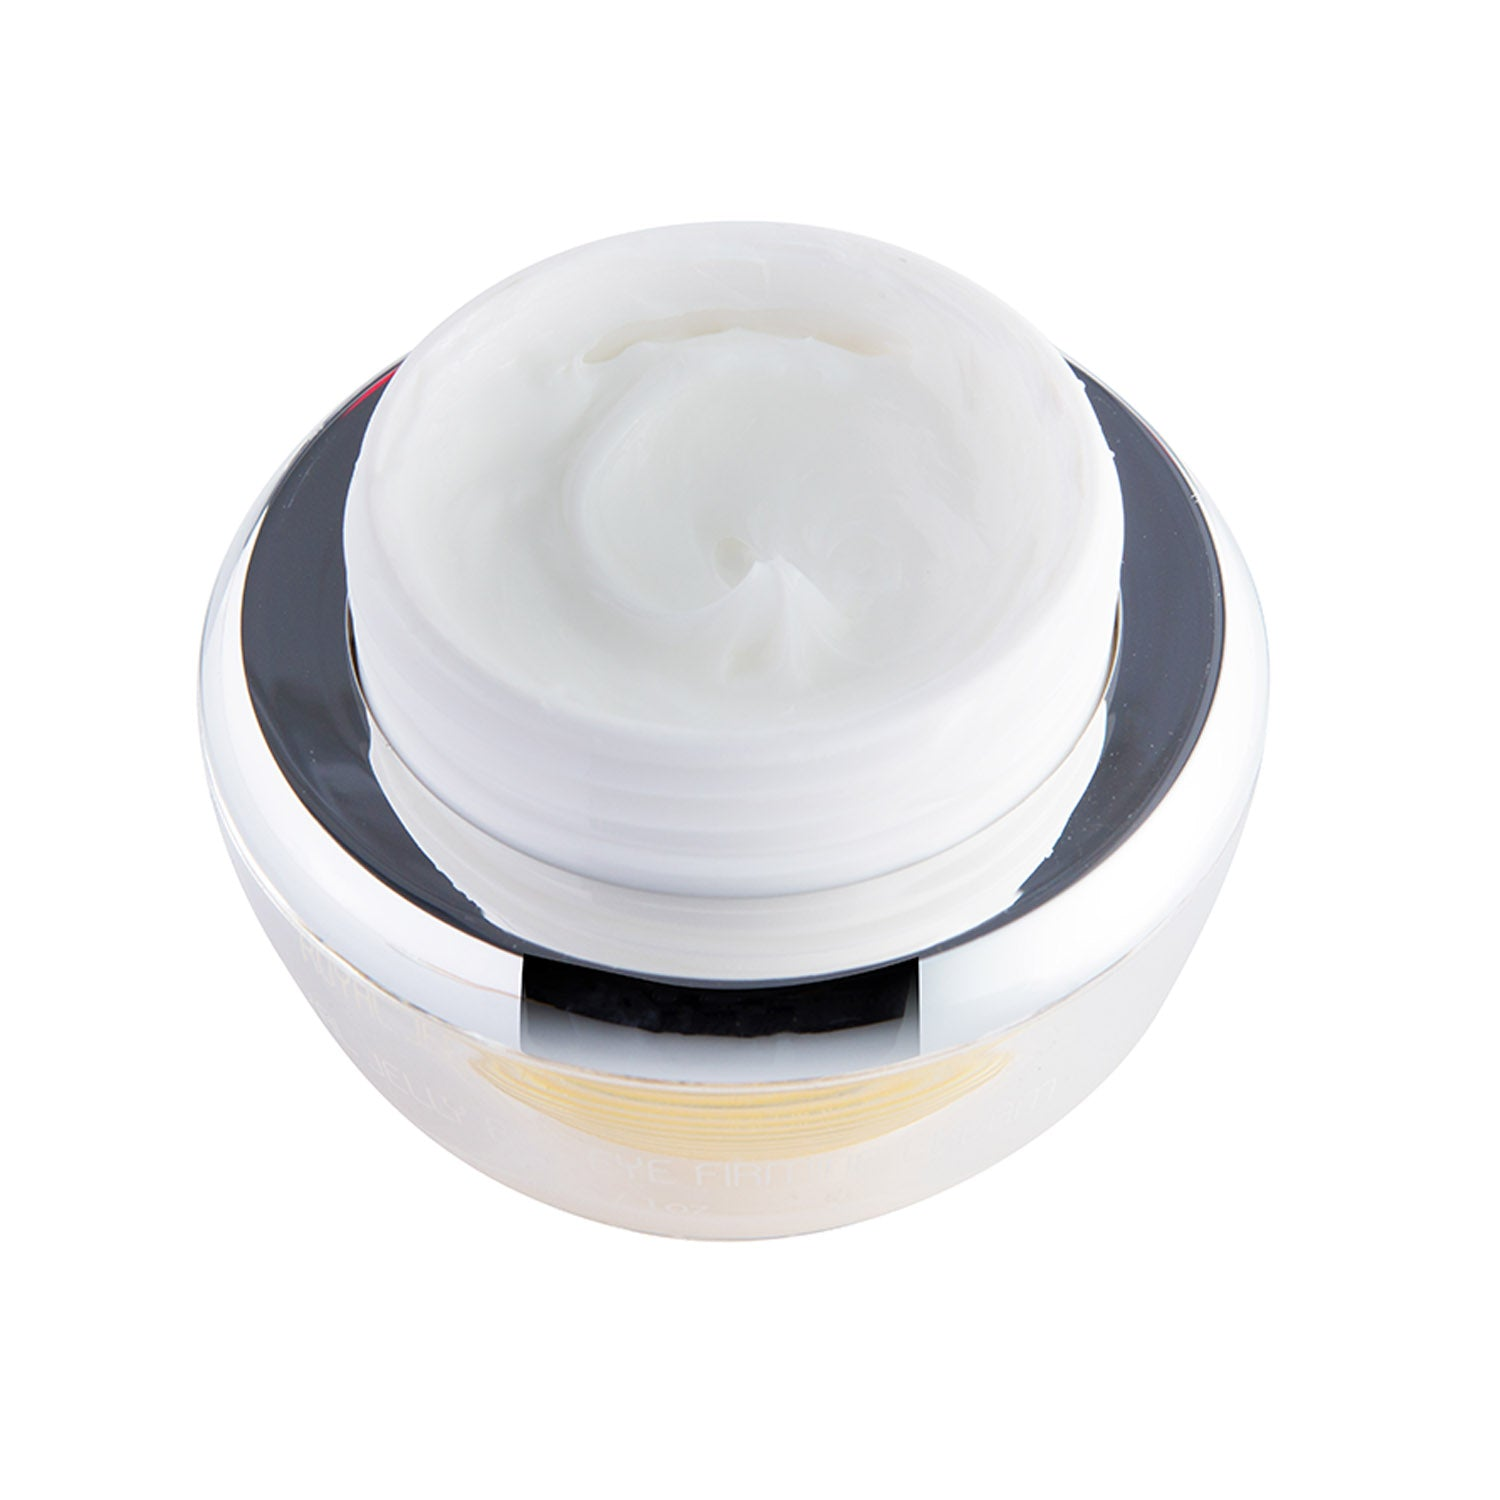 Venofye Under Eye Wrinkle Cream